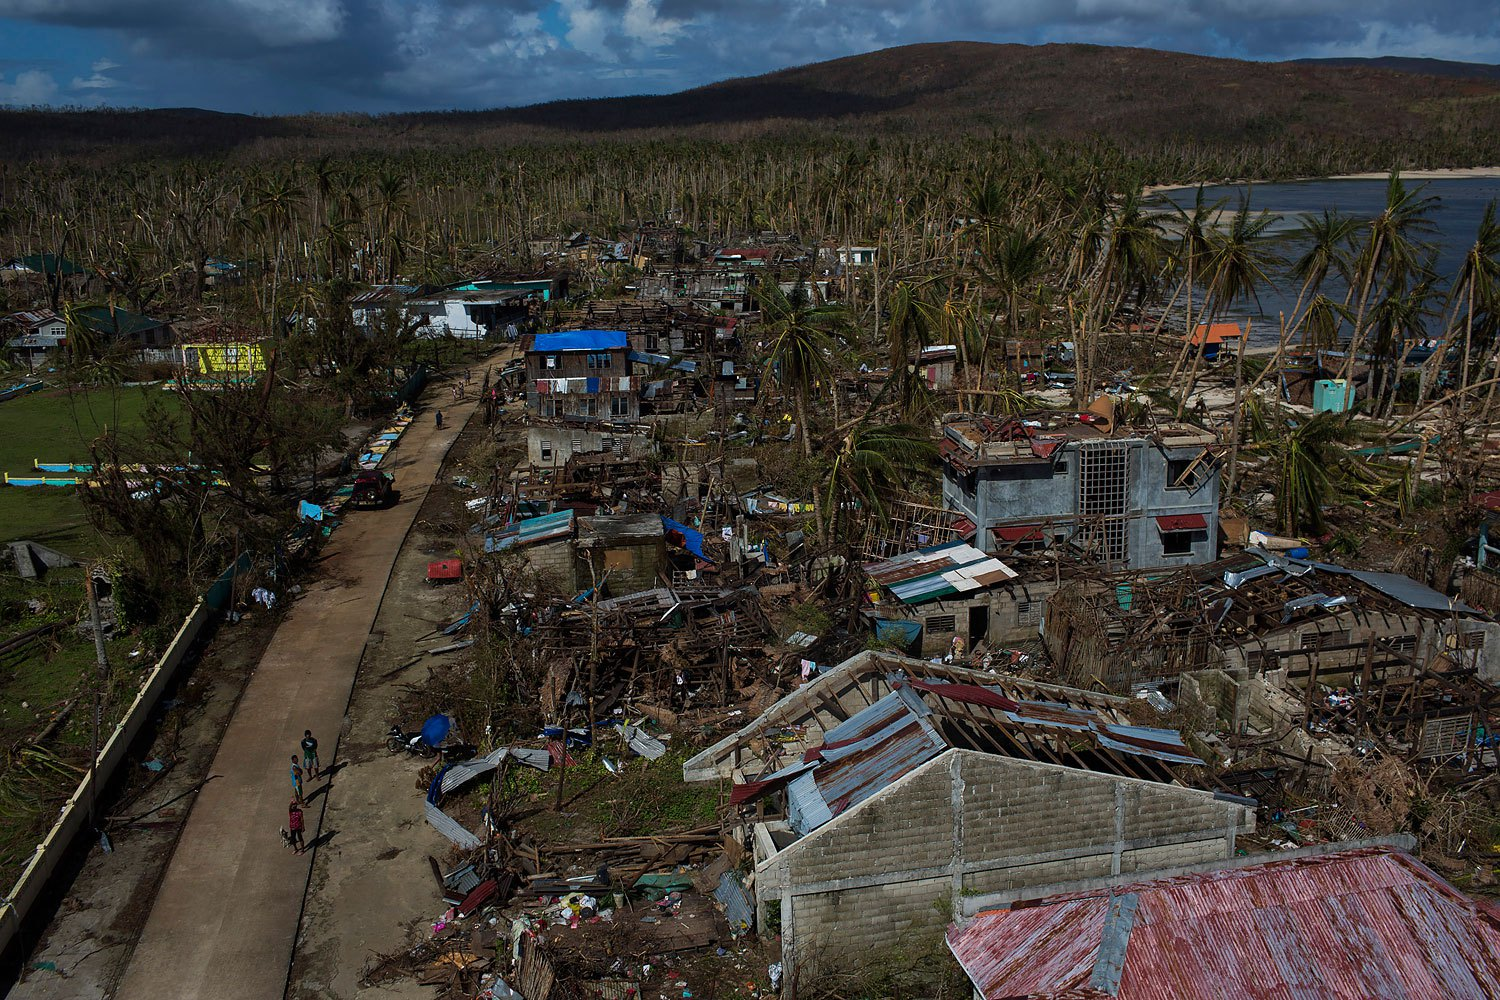 People from a remote island that was cut off by Haiyan Typhoon  walk on the street in the street in Homonhon Island, Philippines on November 14, 2013.